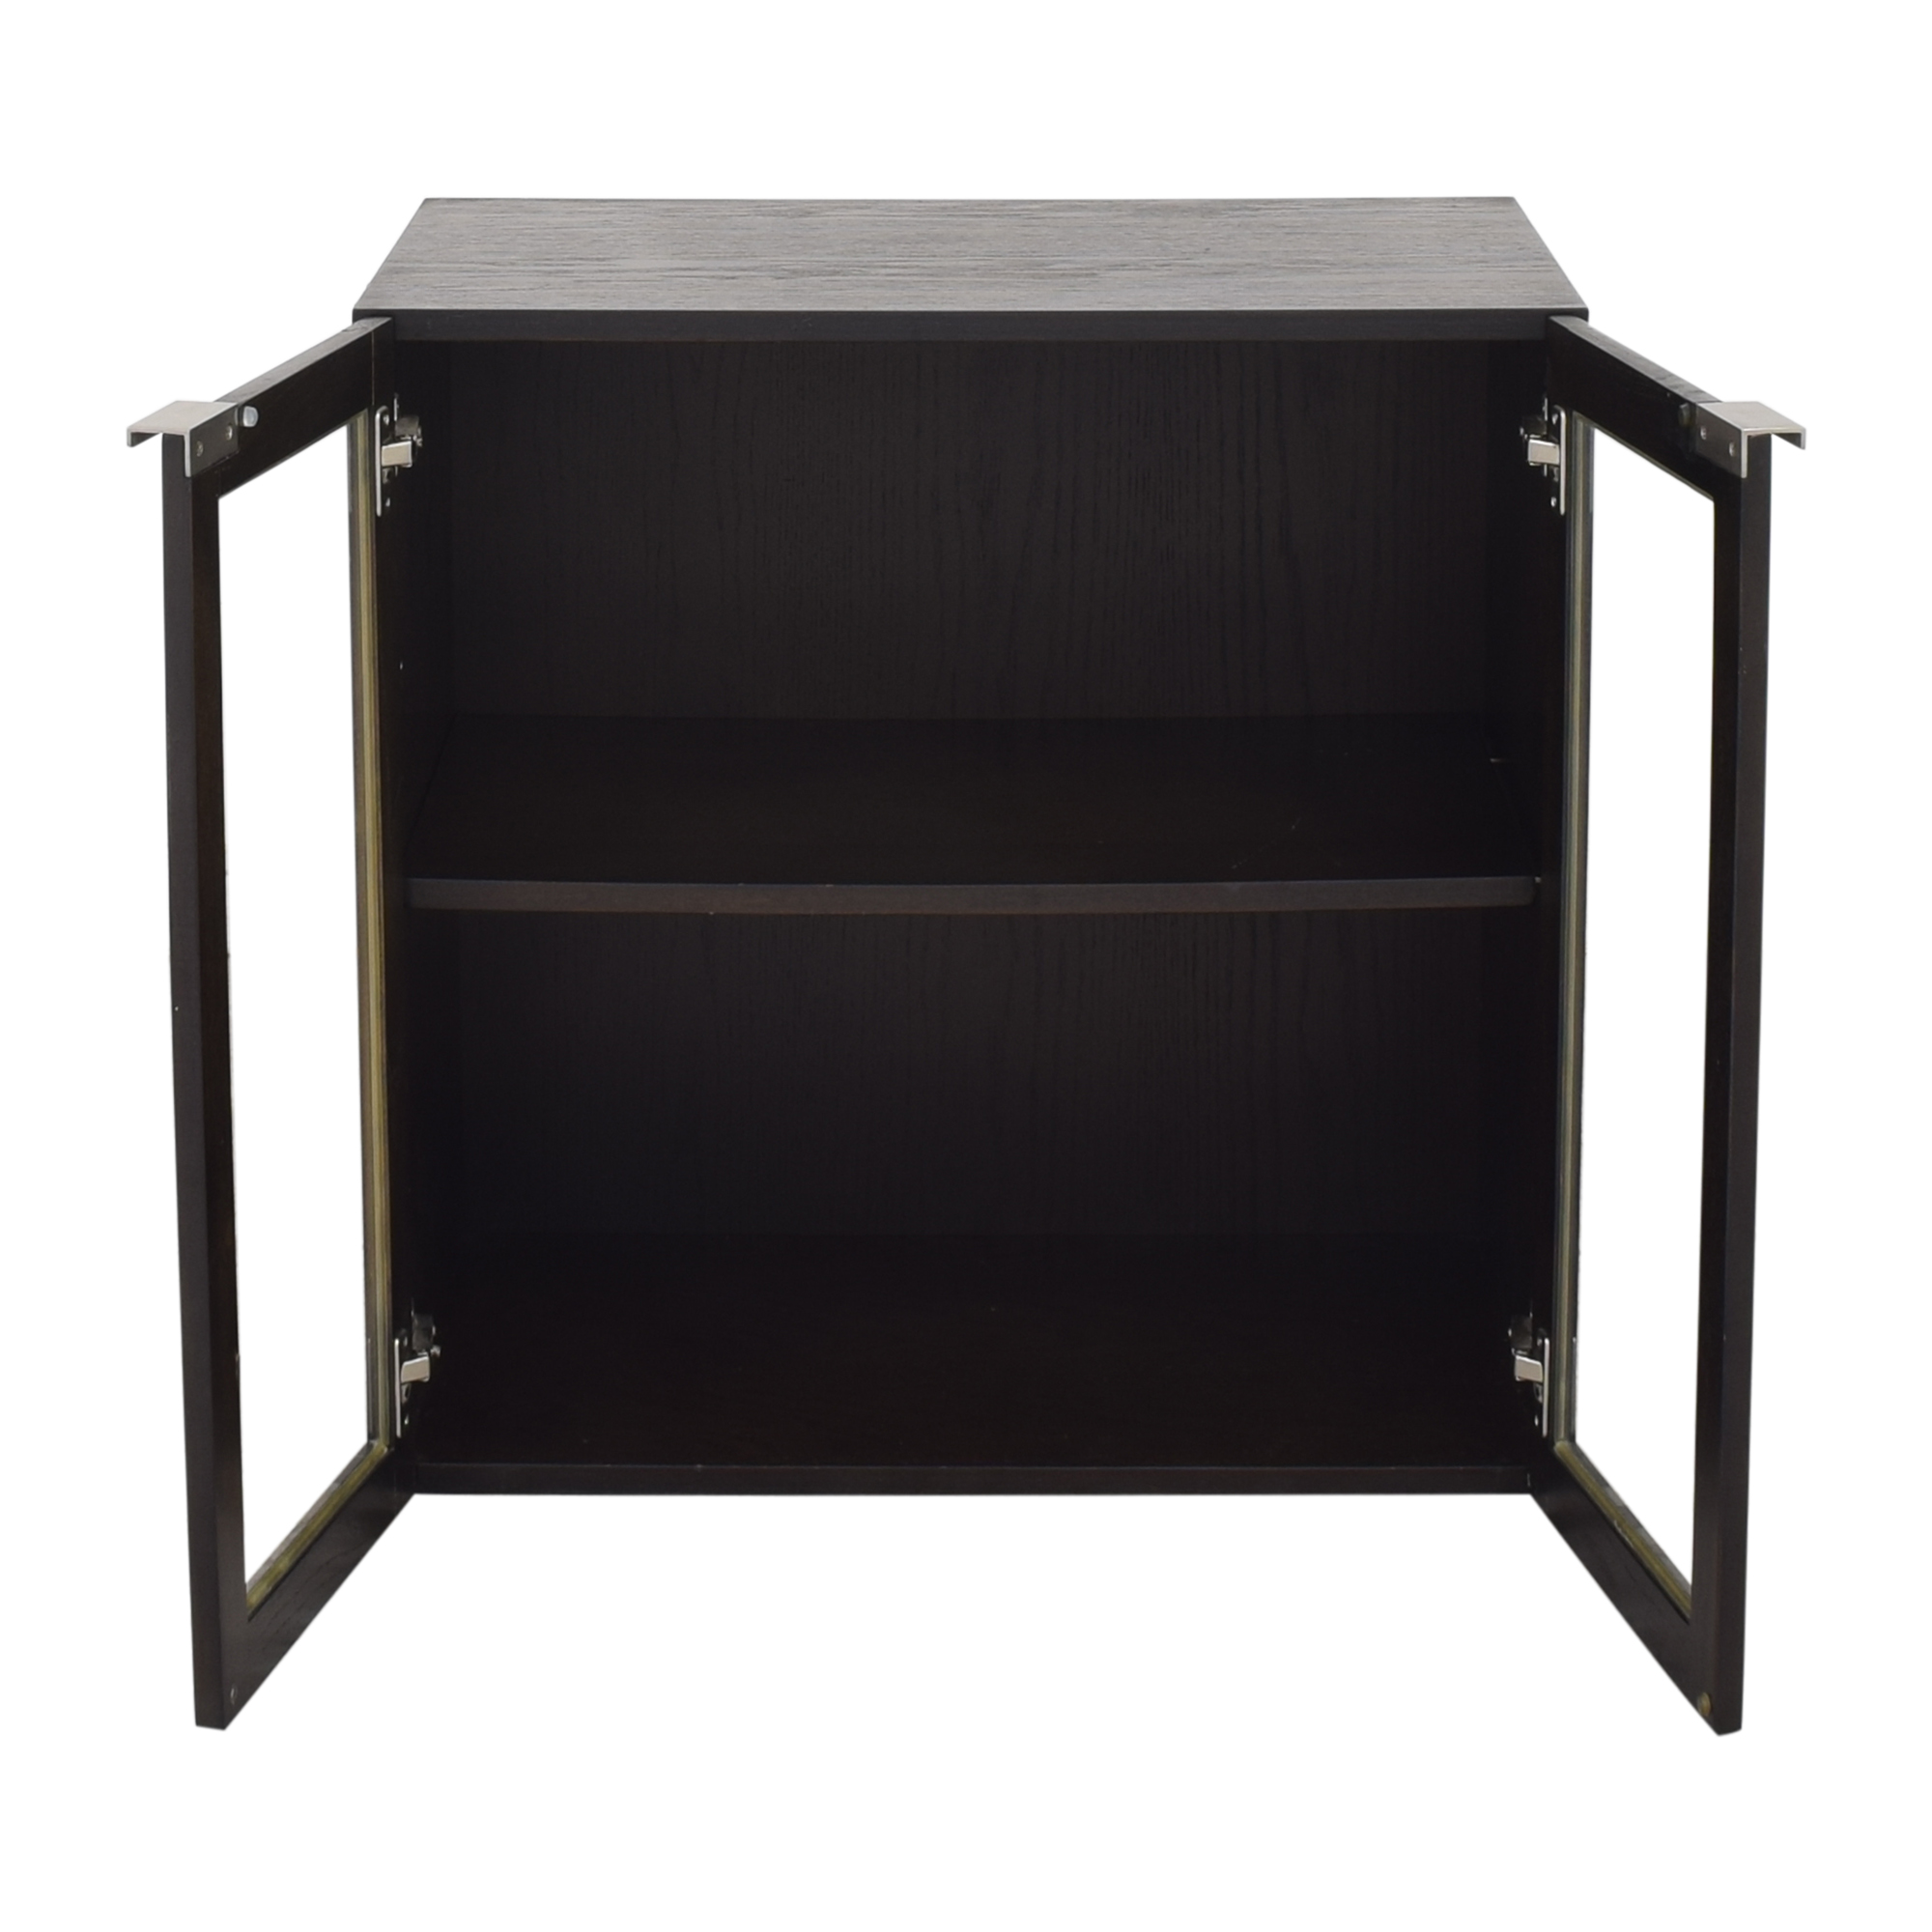 West Elm Everywhere Storage Two Door Cabinet / Cabinets & Sideboards